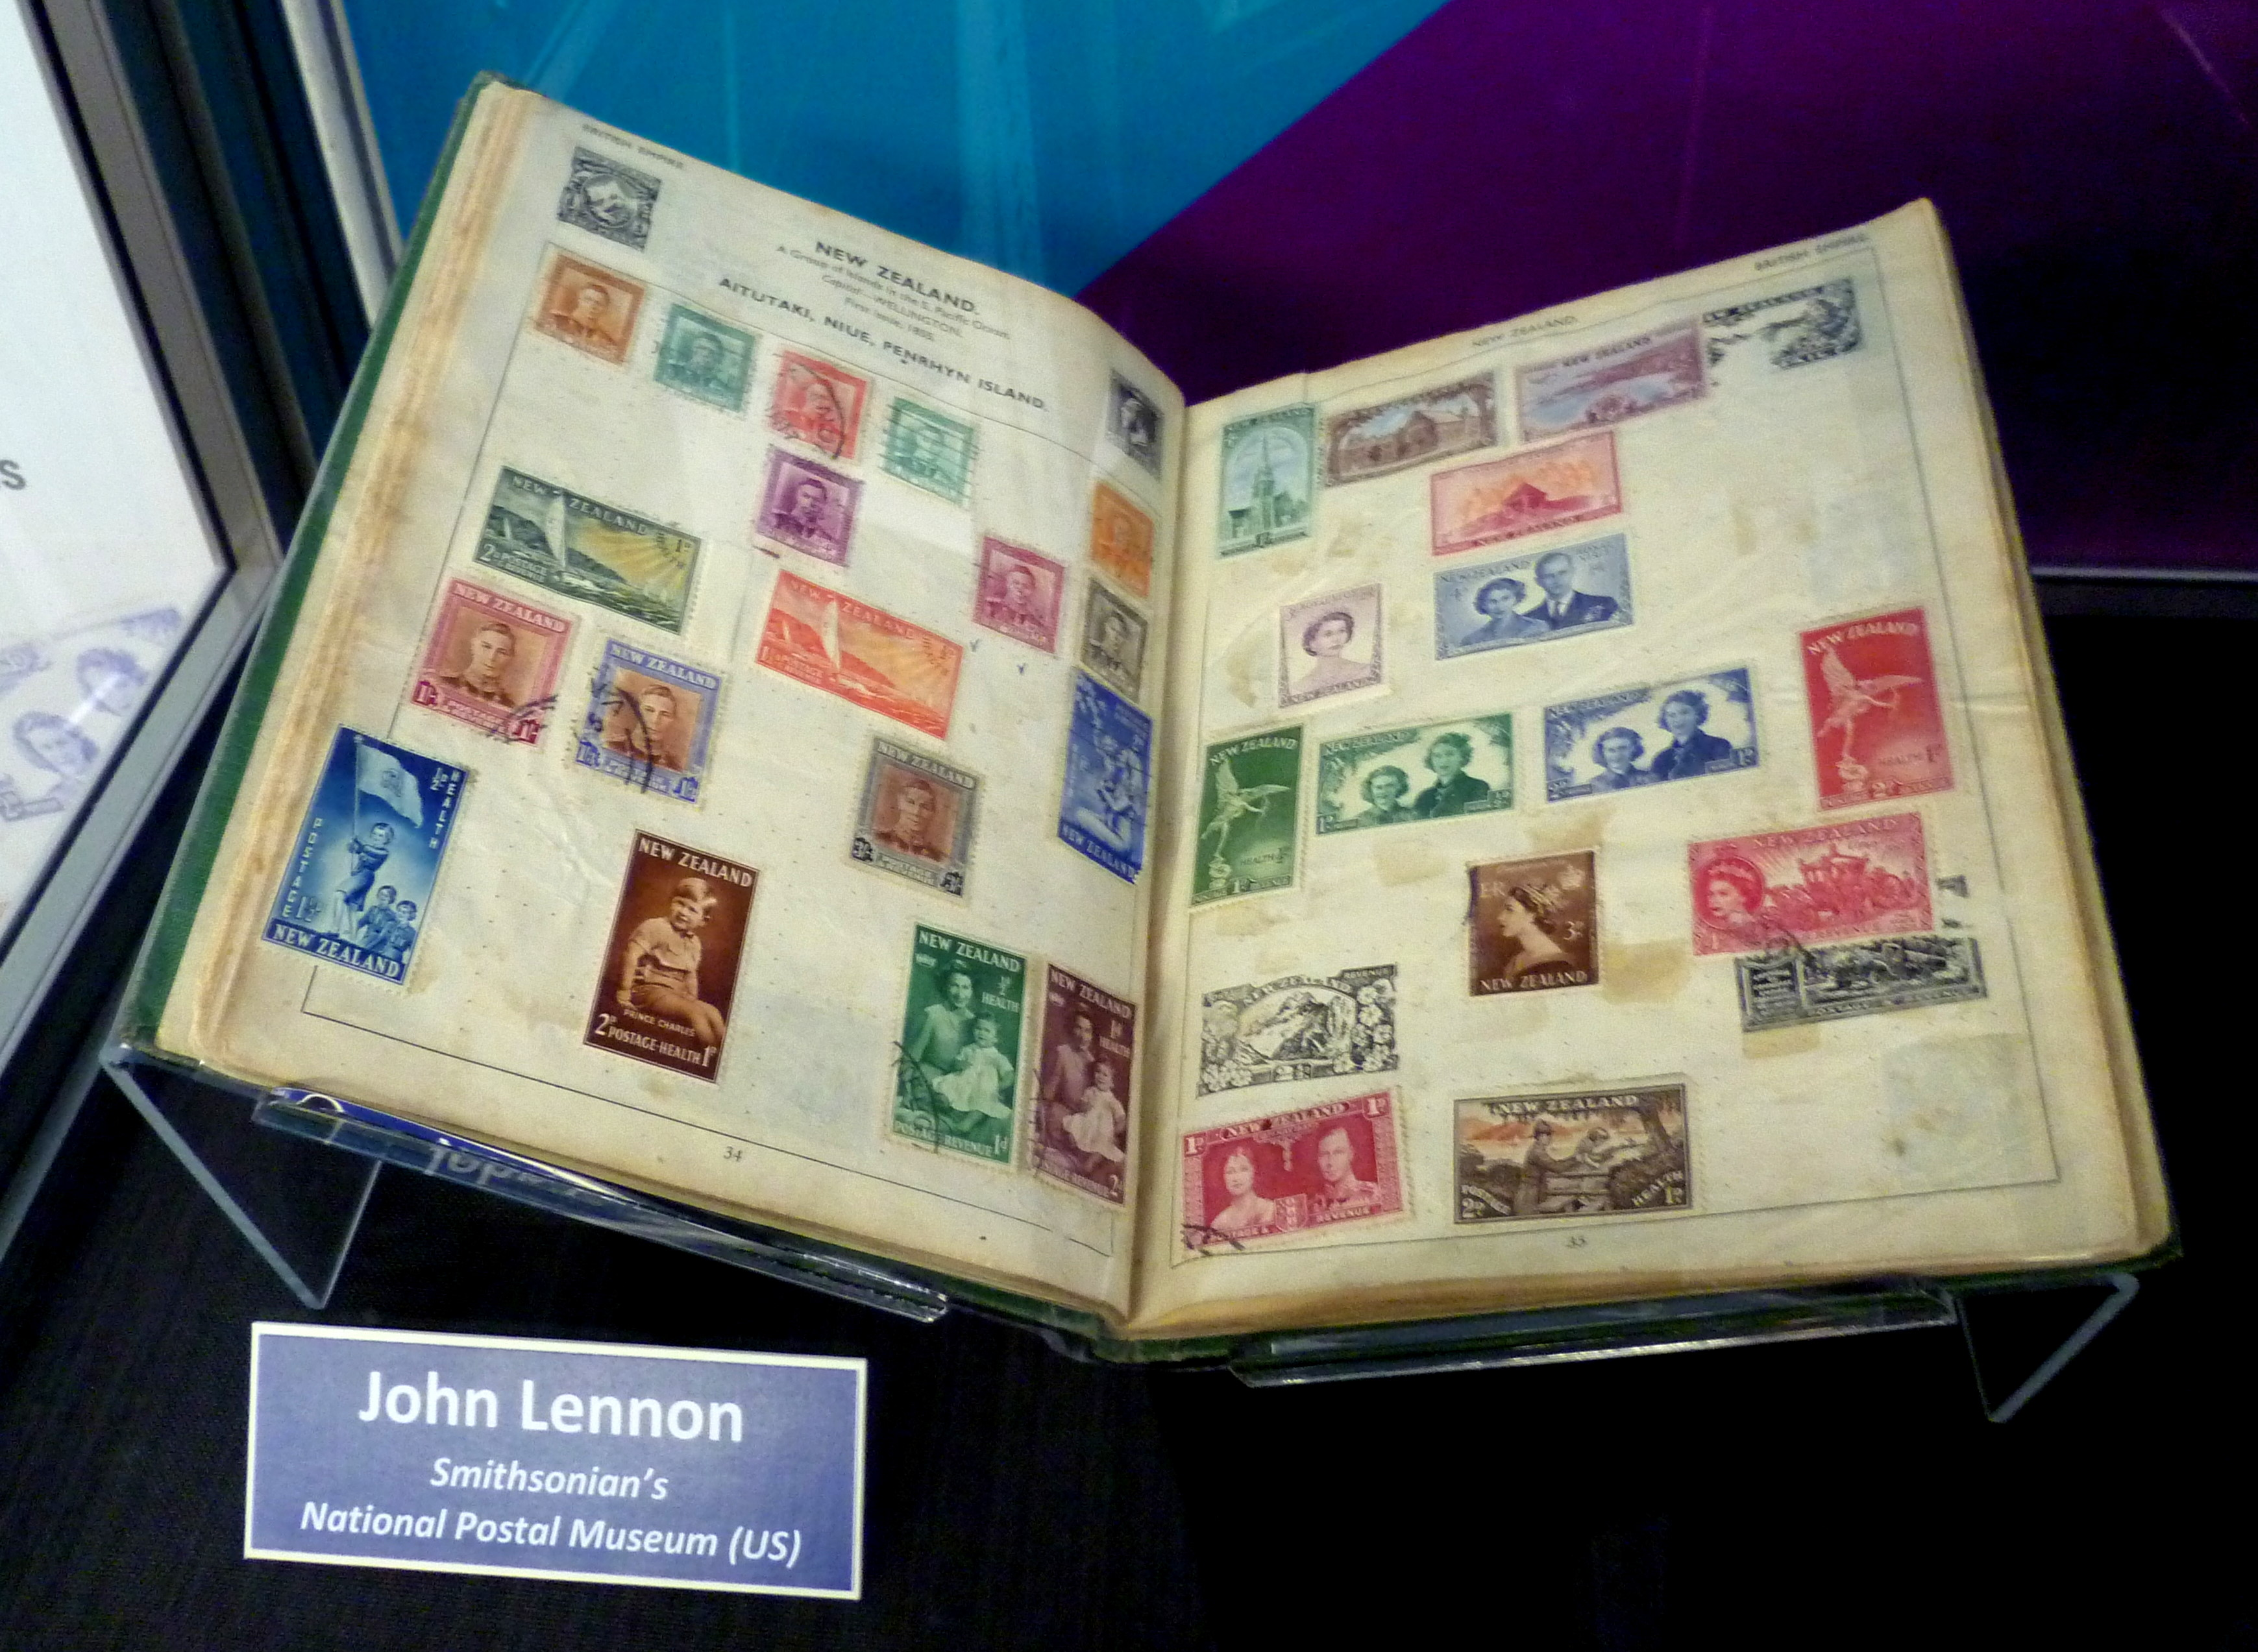 John Lennon's childhood stamp collection at the Smithsonian's National Postal Museum in Washington, D.C. Photo taken on September 17, 2016.